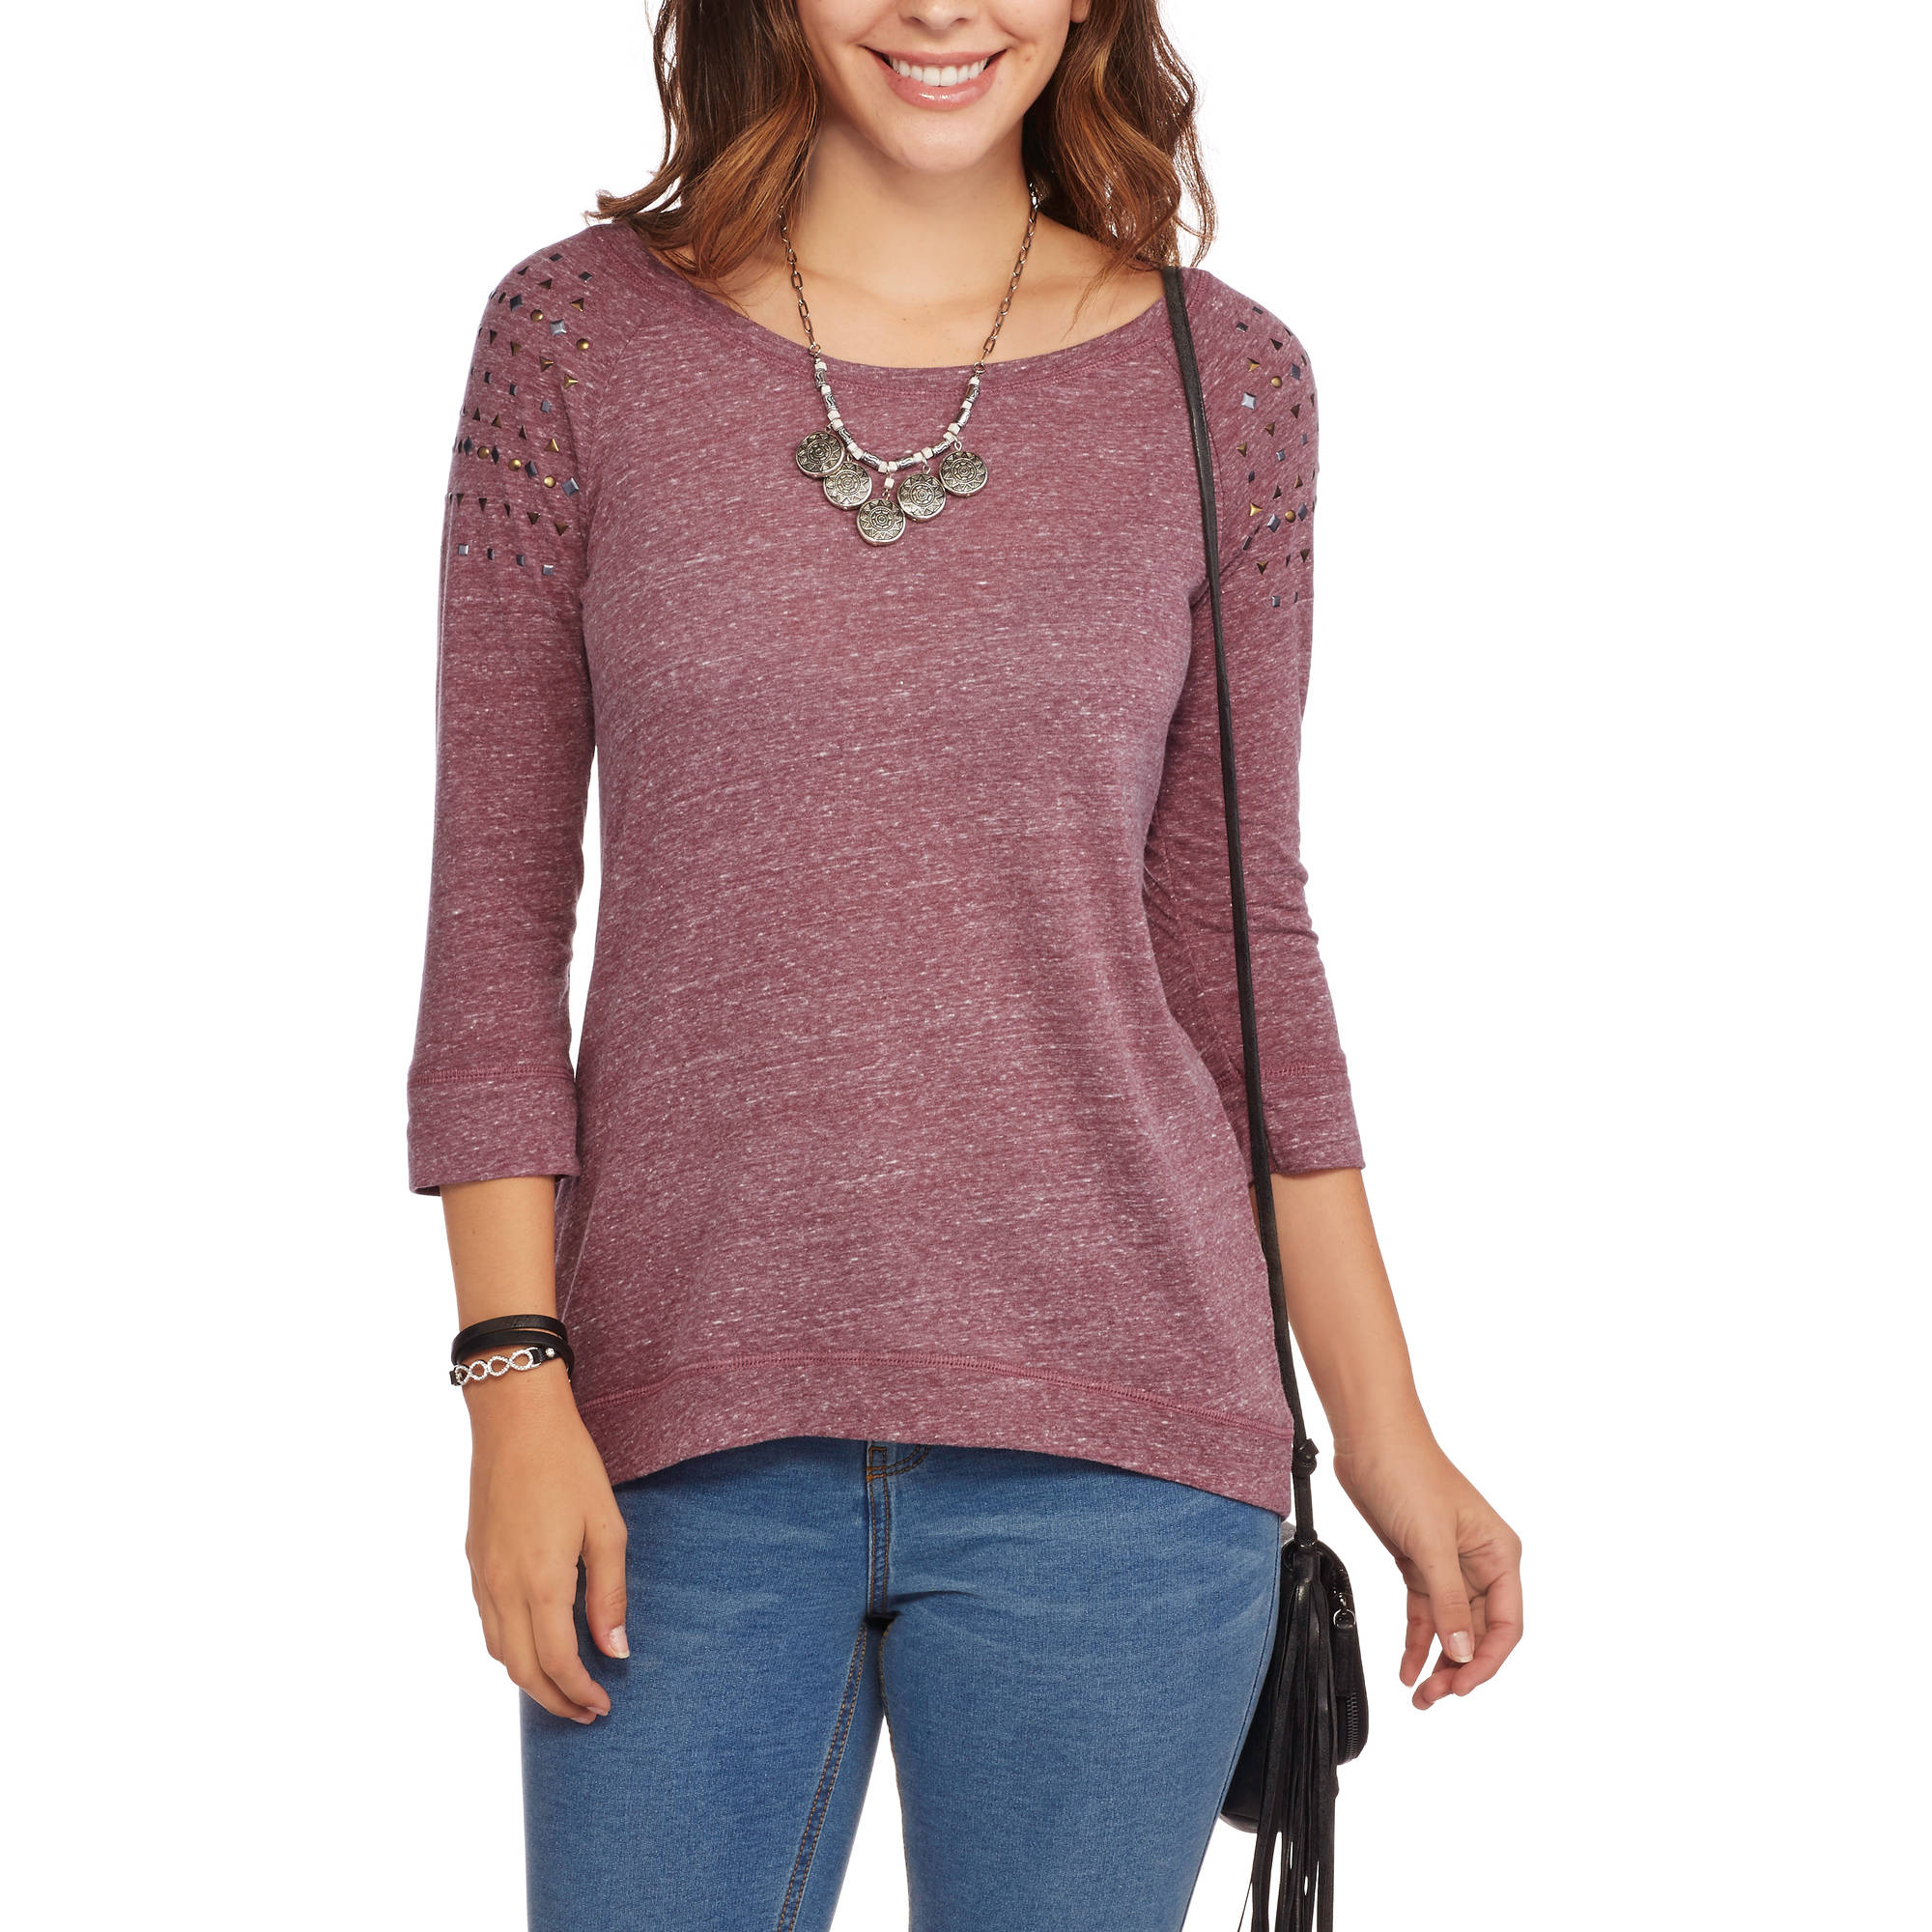 French Laundry Women's Long Sleeve Hi-Lo T-Shirt with Studded Sleeve